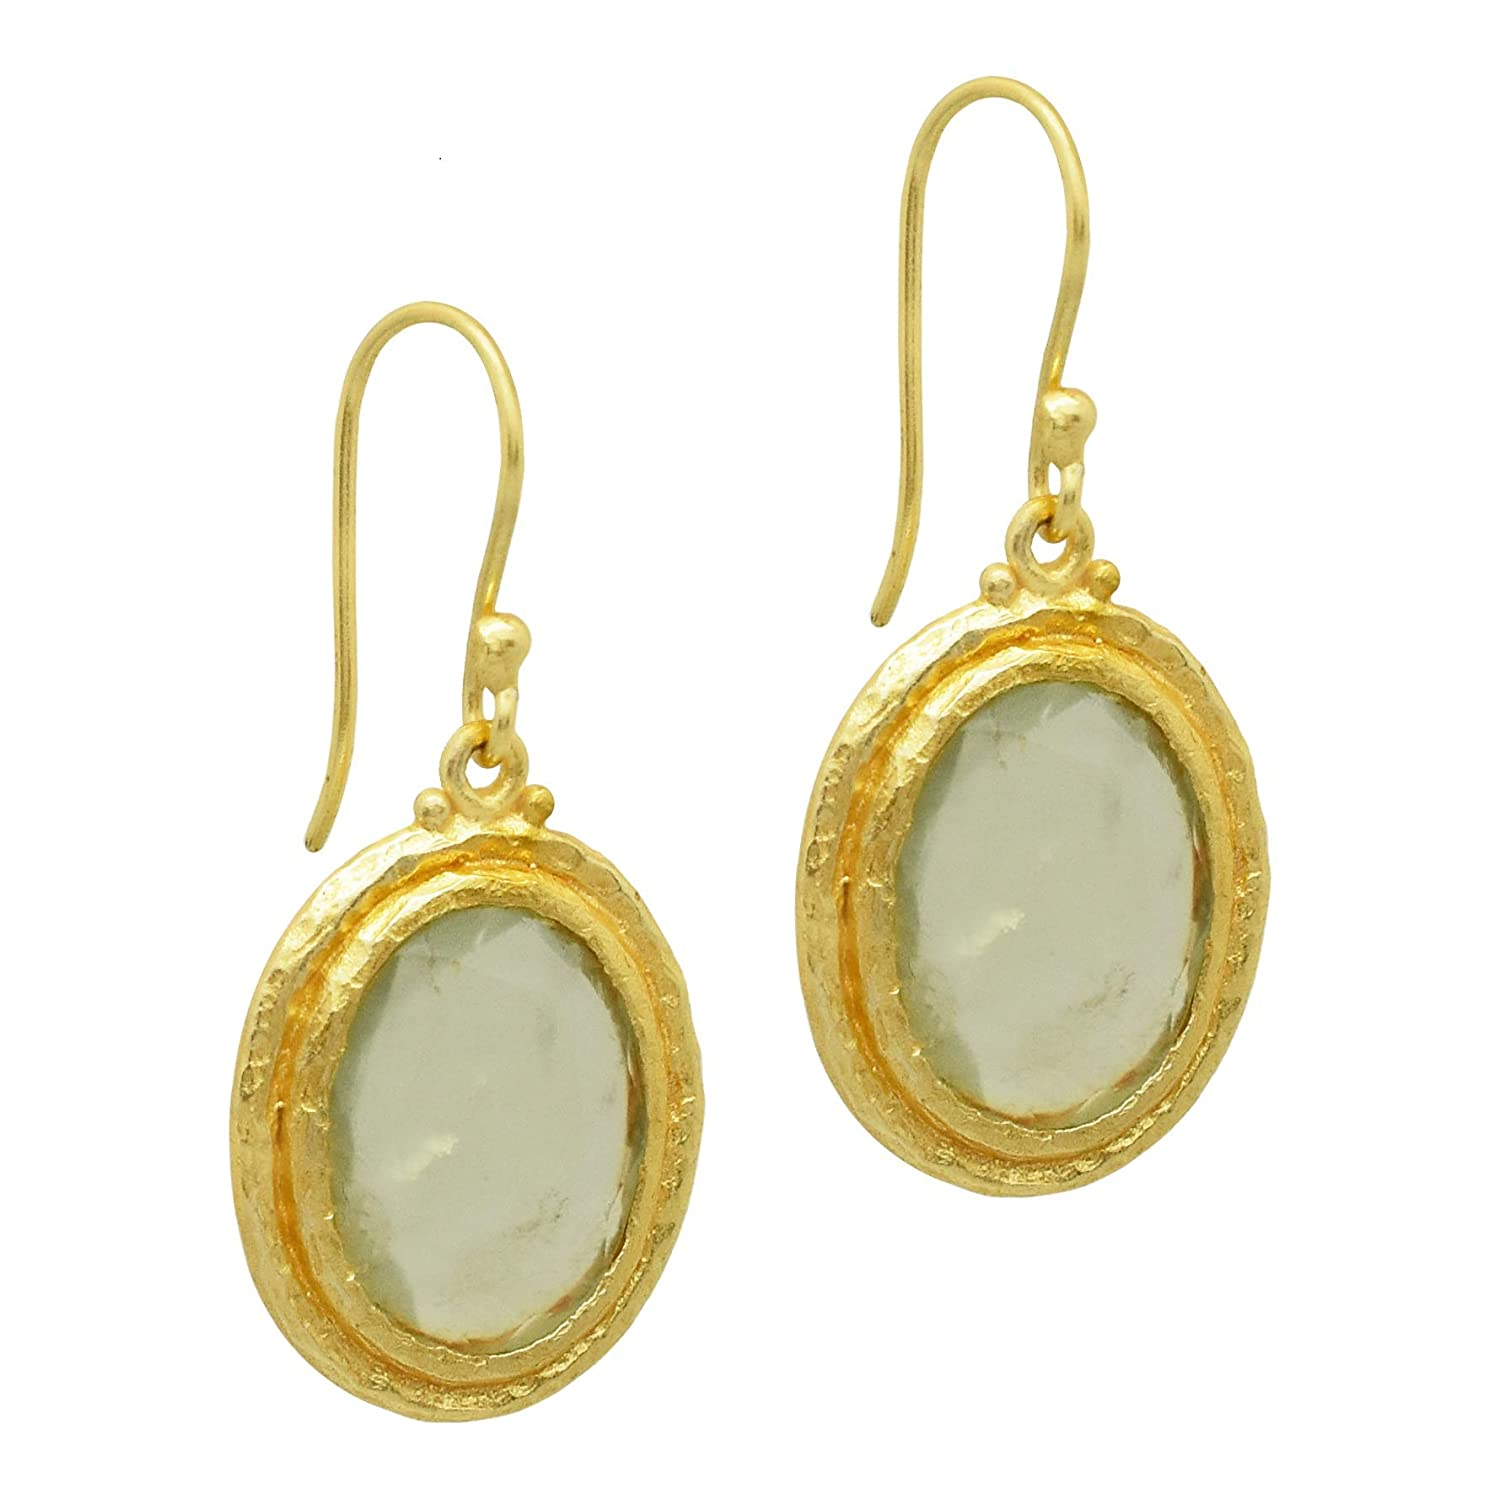 The V Collection earrings 22k yellow gold plated prehnite handmade dangling earrings for women and girls